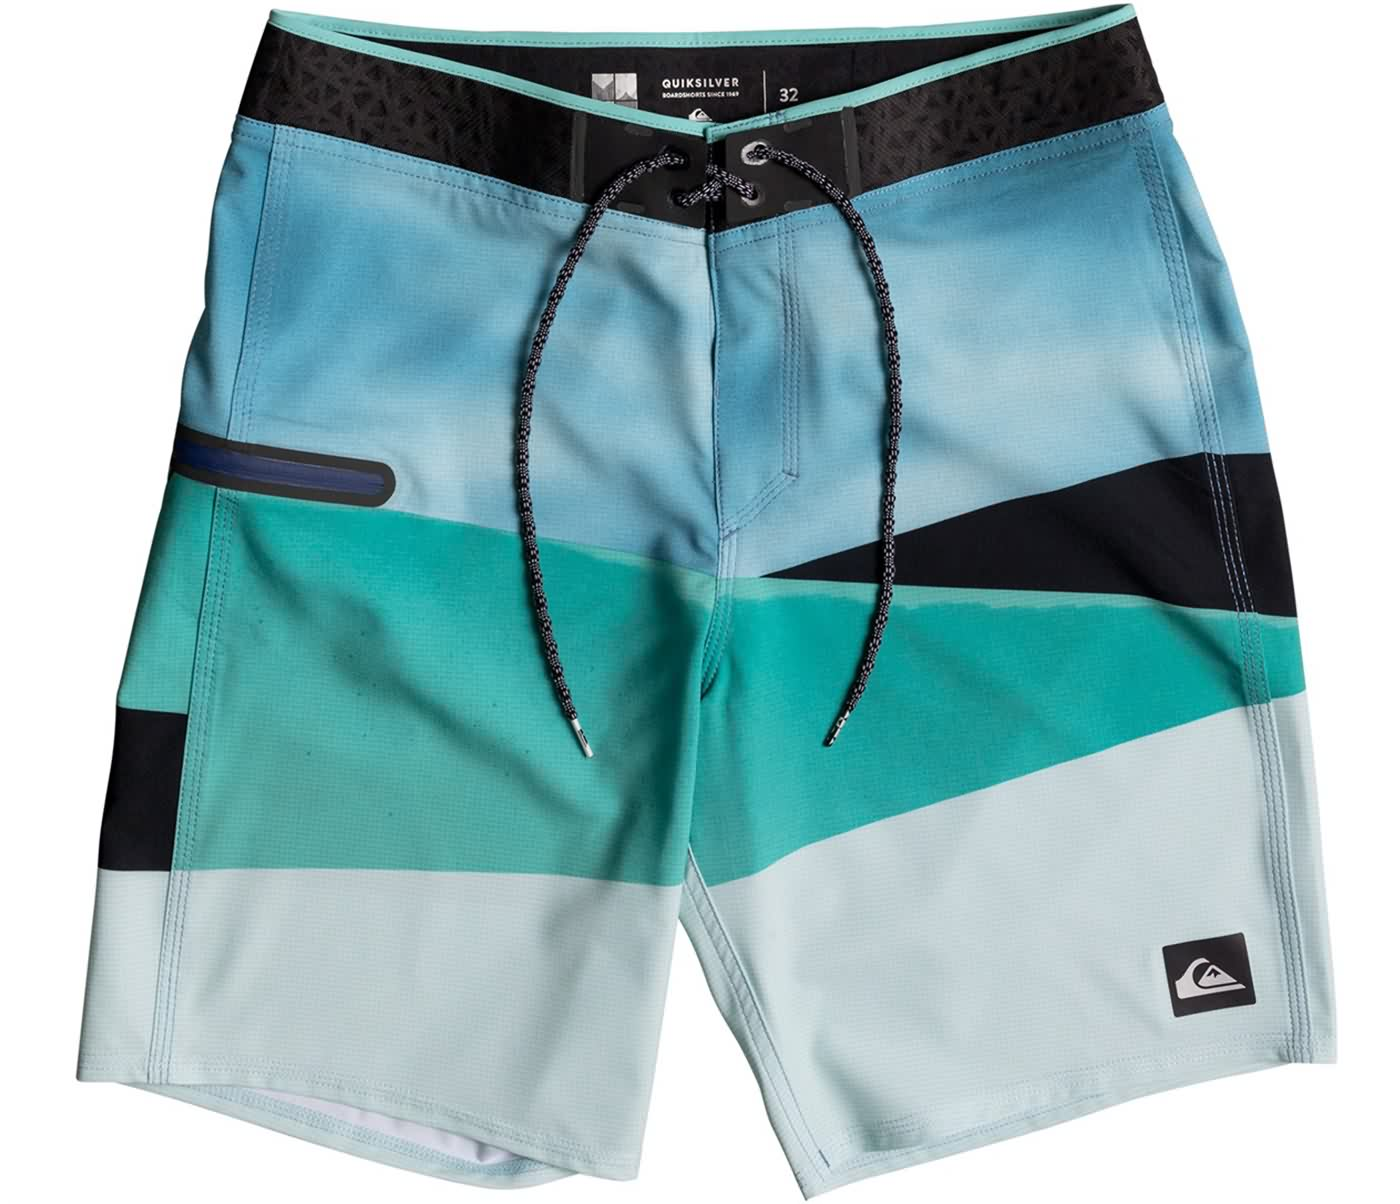 Quiksilver Surf Fall 2017 Mens Beach Boardshorts Collection